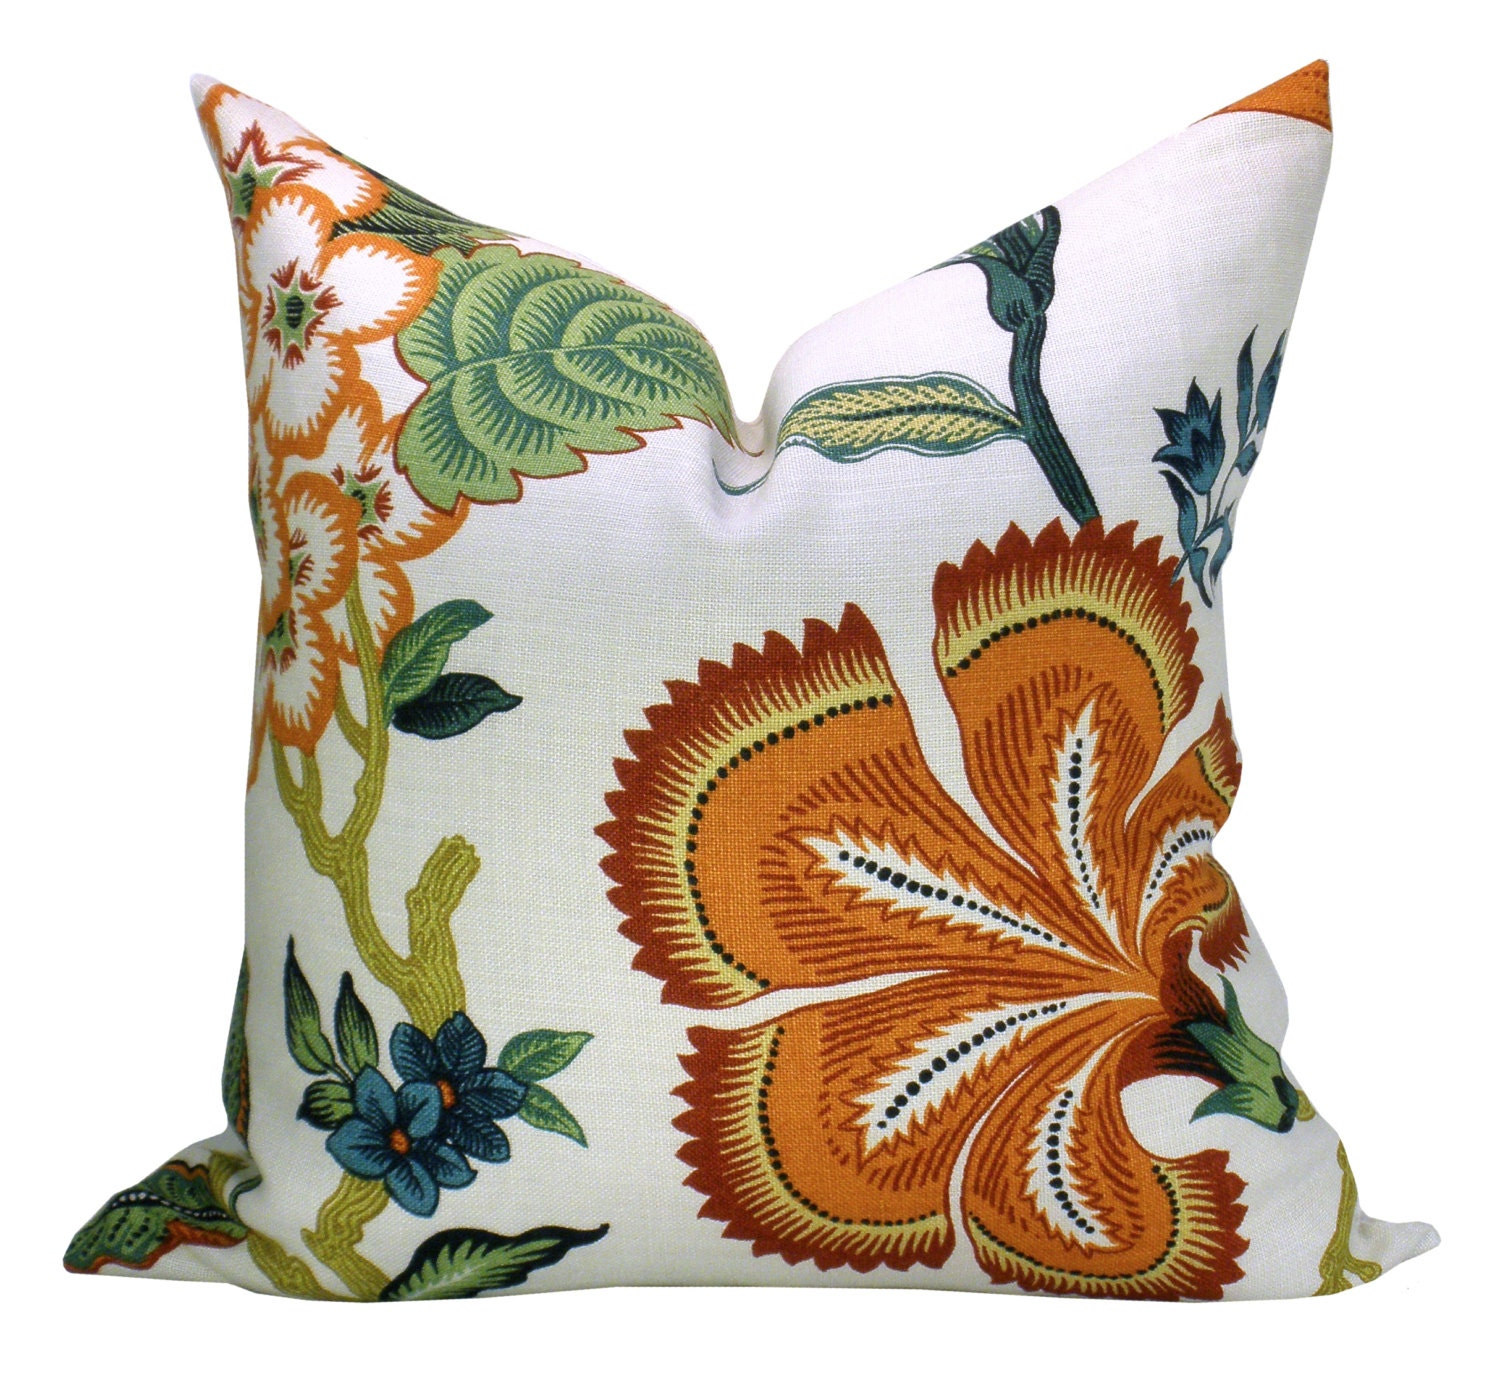 Hothouse Flowers pillow cover in Spark orange flower